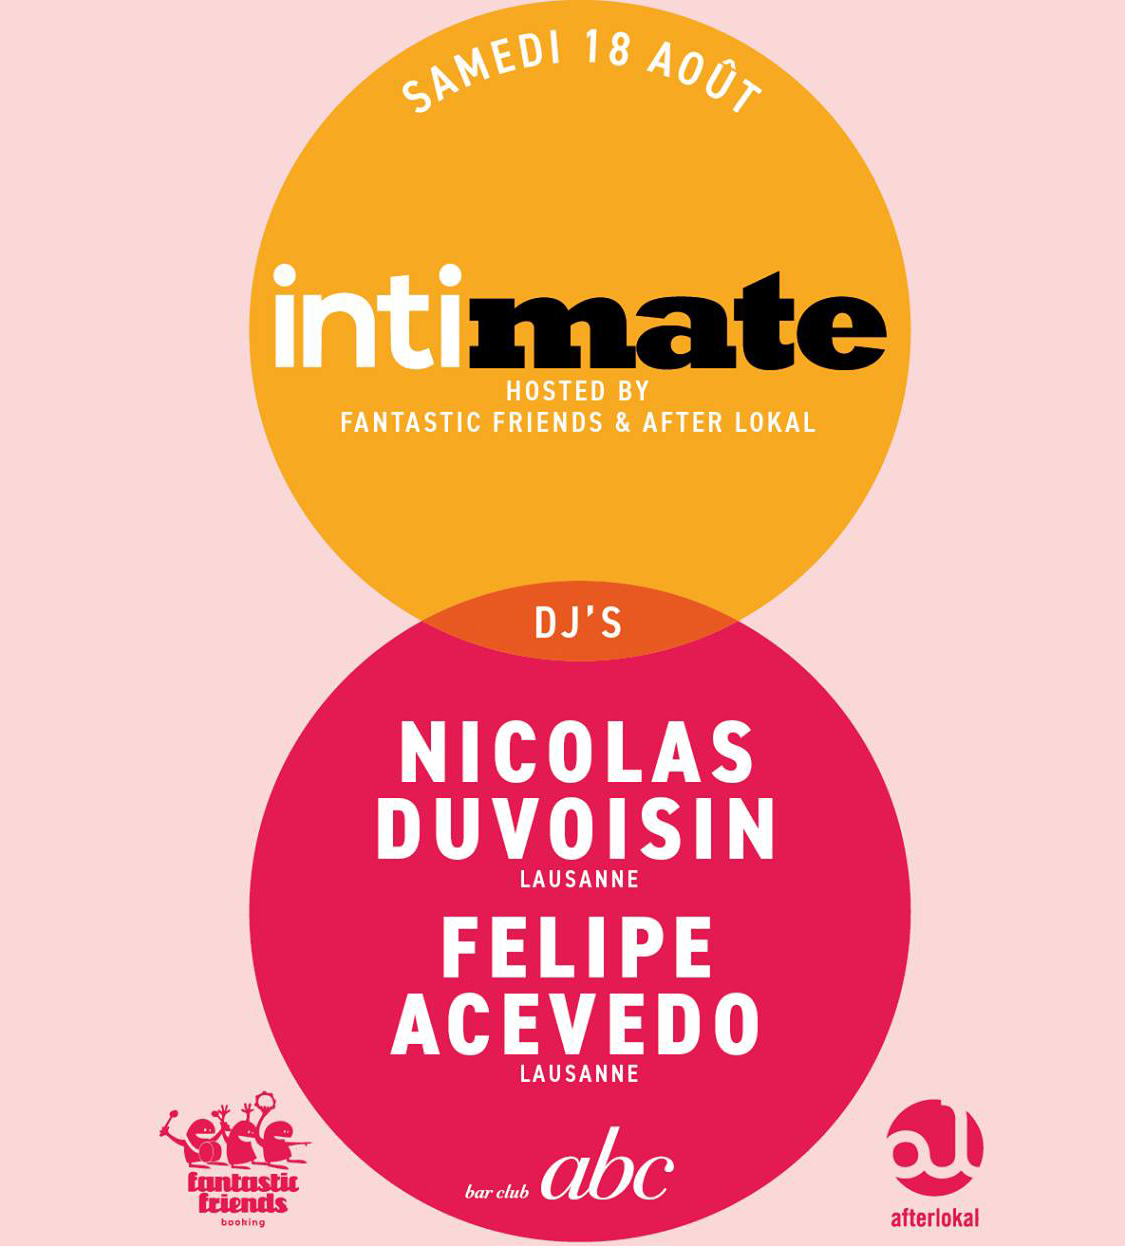 INTIMATE hosted by FFR ! 18.08.18